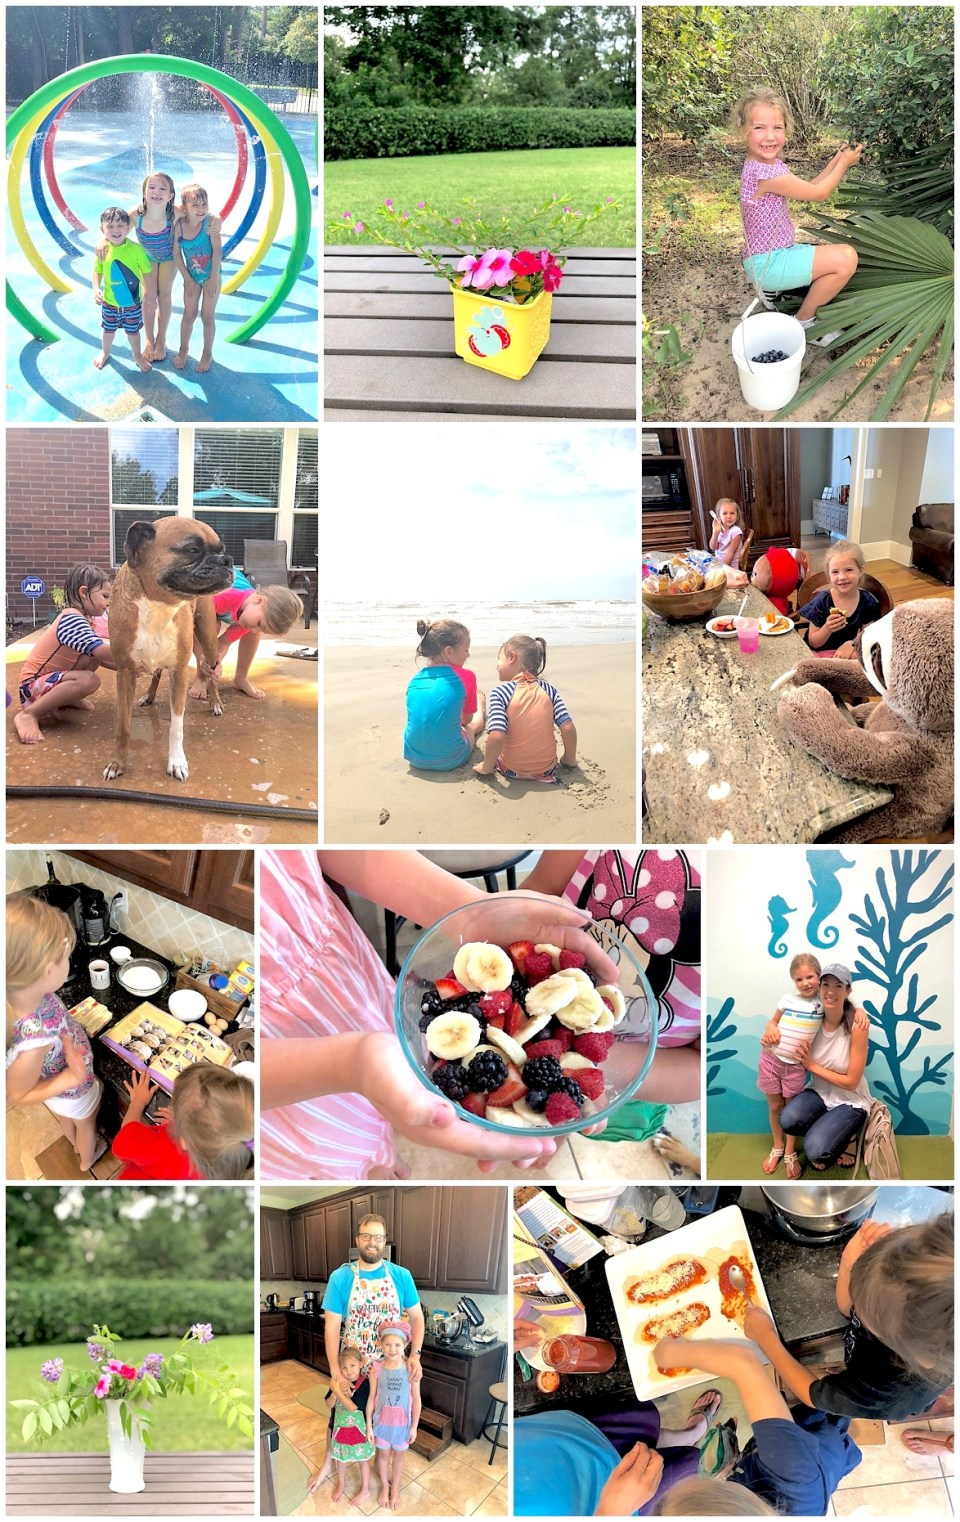 Collection of images from summertime checklist activities with 3 & 5 year old daughters